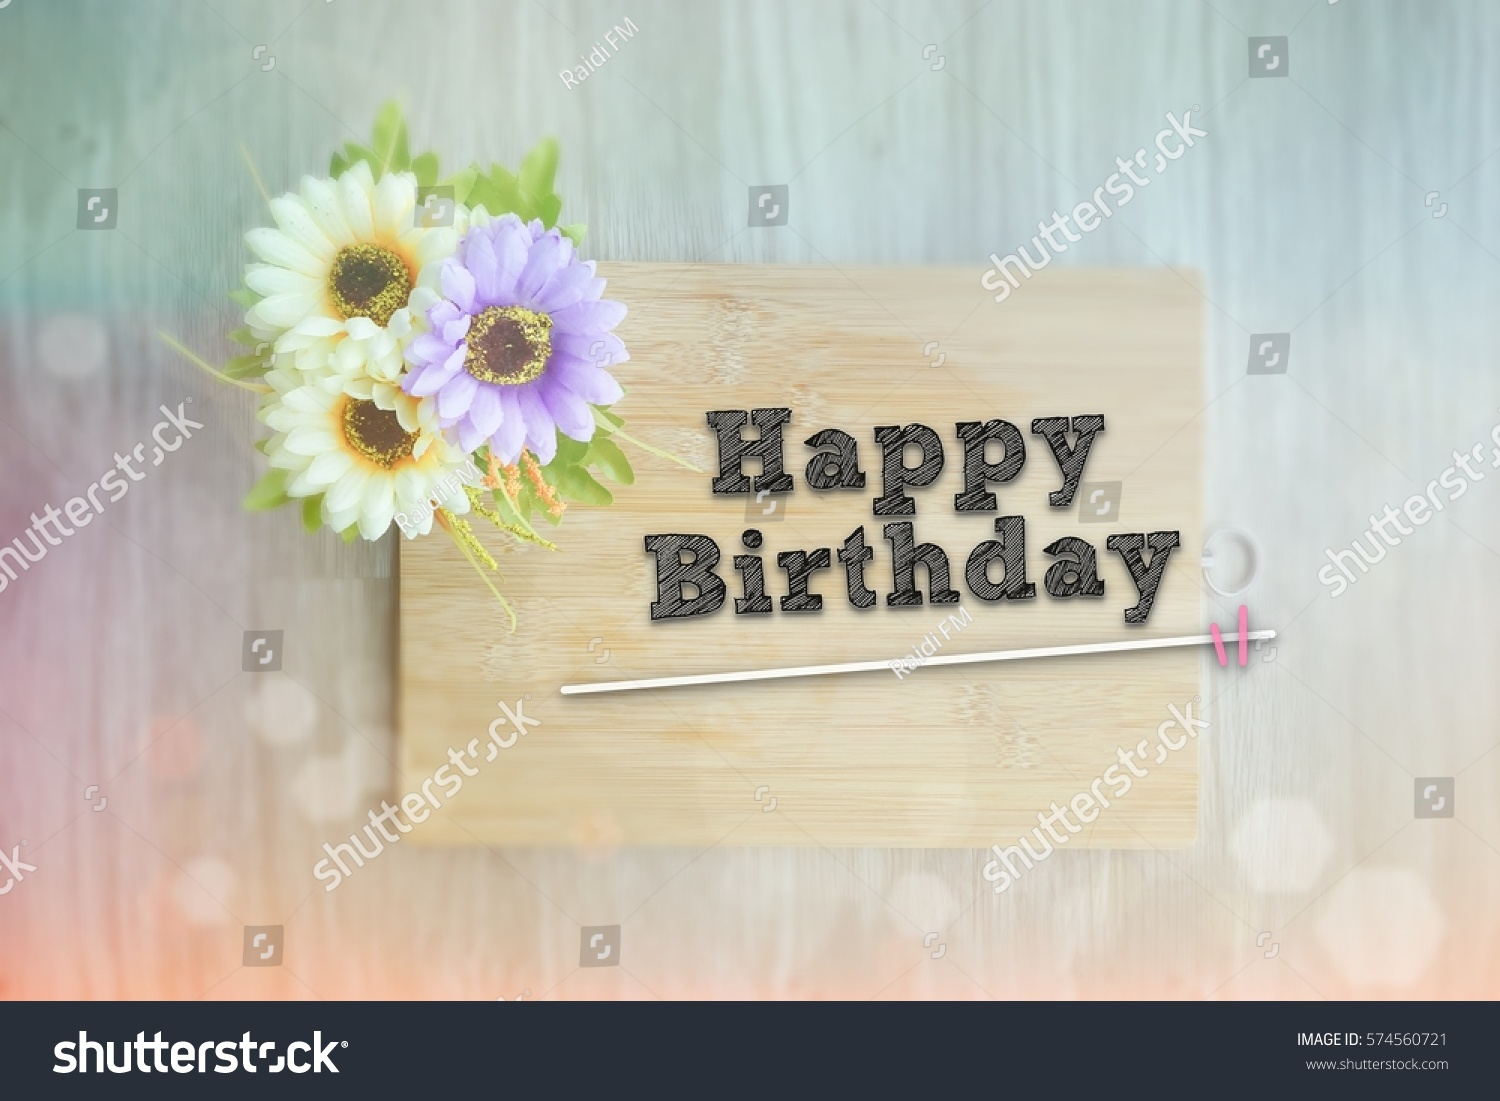 HAPPY BIRTHDAY Words On The Wooden Background Vintage Retro Or Rustic Style With Flowers 574560721